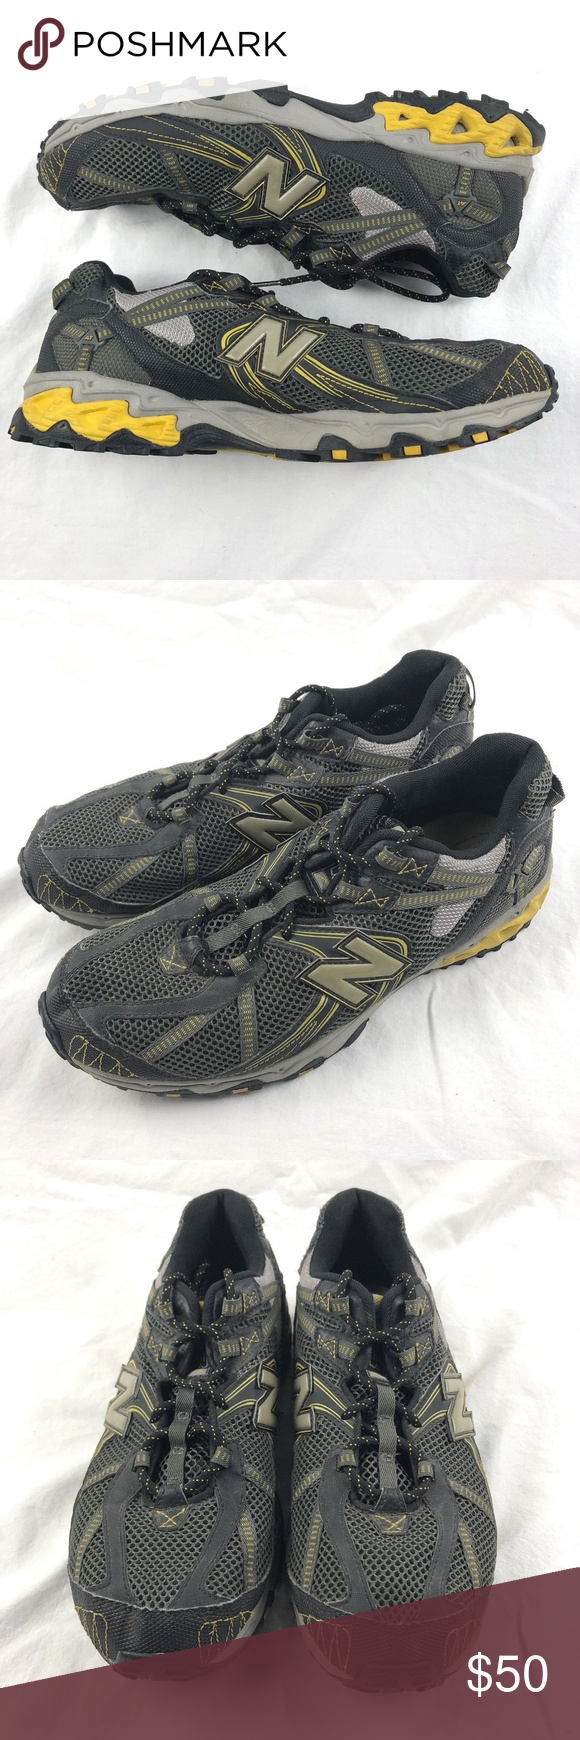 New Balance Mens MT572BY N Fuse All Terrain Trail Running